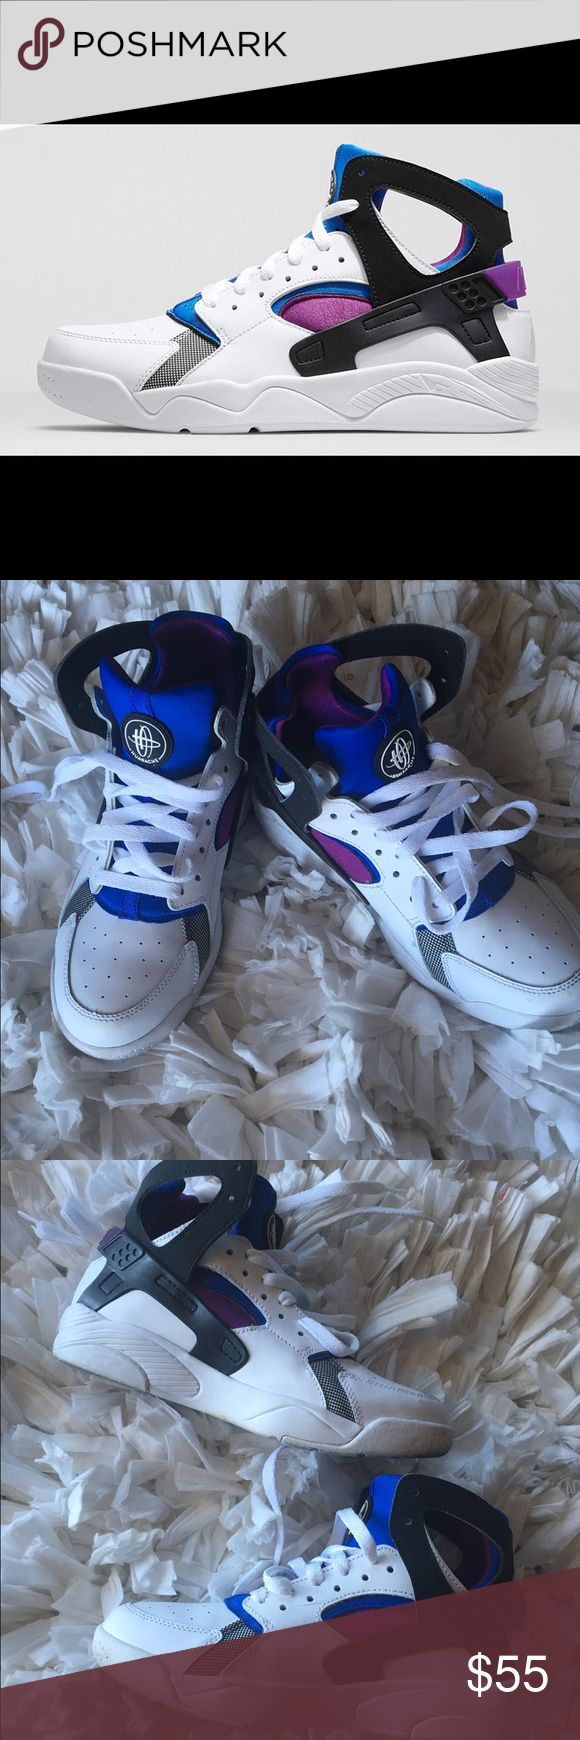 Nike Air Flight Huaraches Nike High Top Huaraches//Size 6Y//No box//Shoes have been worn so bottom of shoes DO show signs of wear but, can be easily cleaned again//Very small scratch on back of Right shoe(pictured). Nike Shoes Athletic Shoes